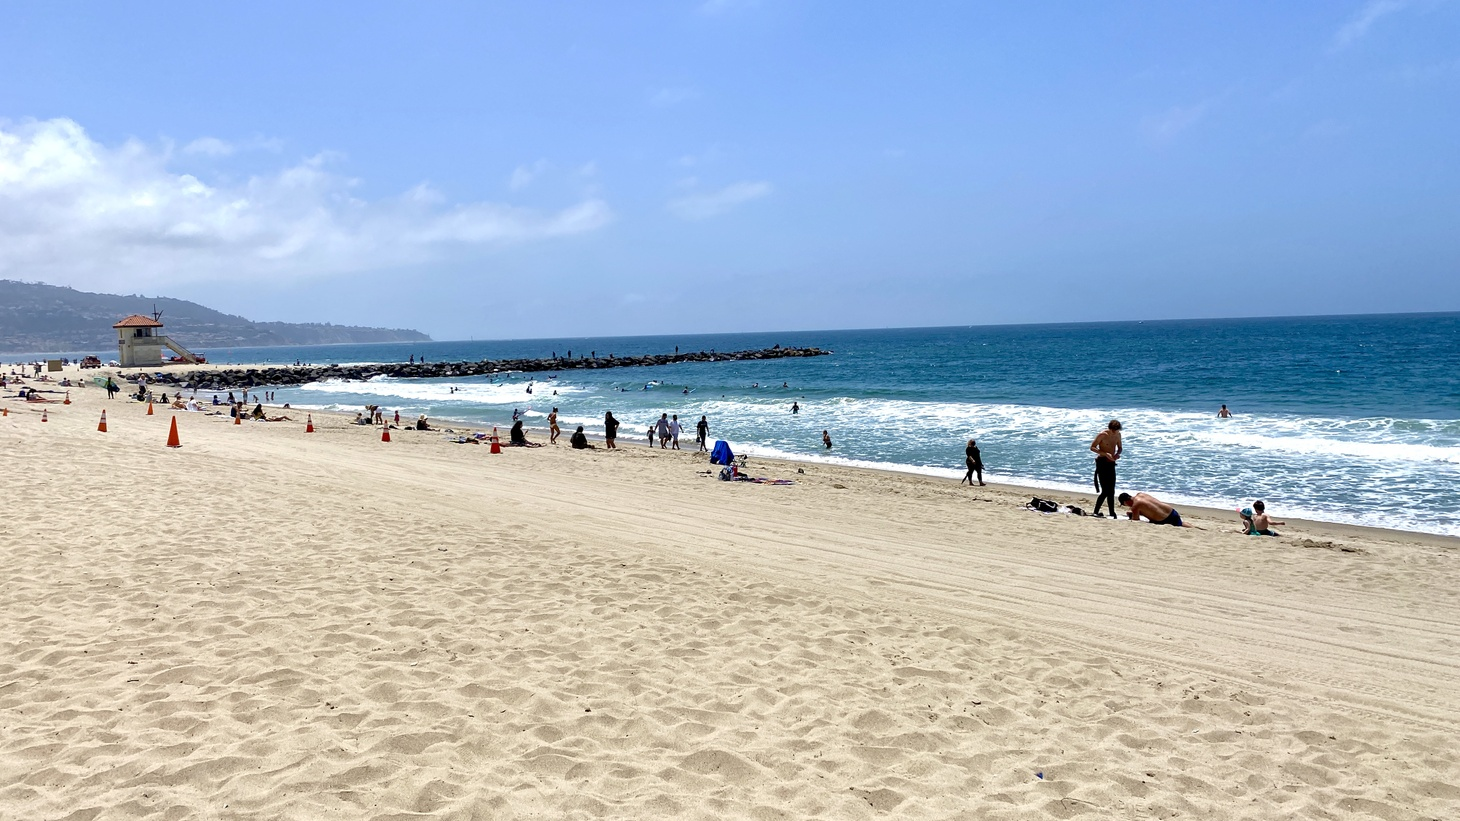 Redondo Beach, California has reopened. Some lawmakers are skeptical that now is the right time for LA County to loosen restrictions.